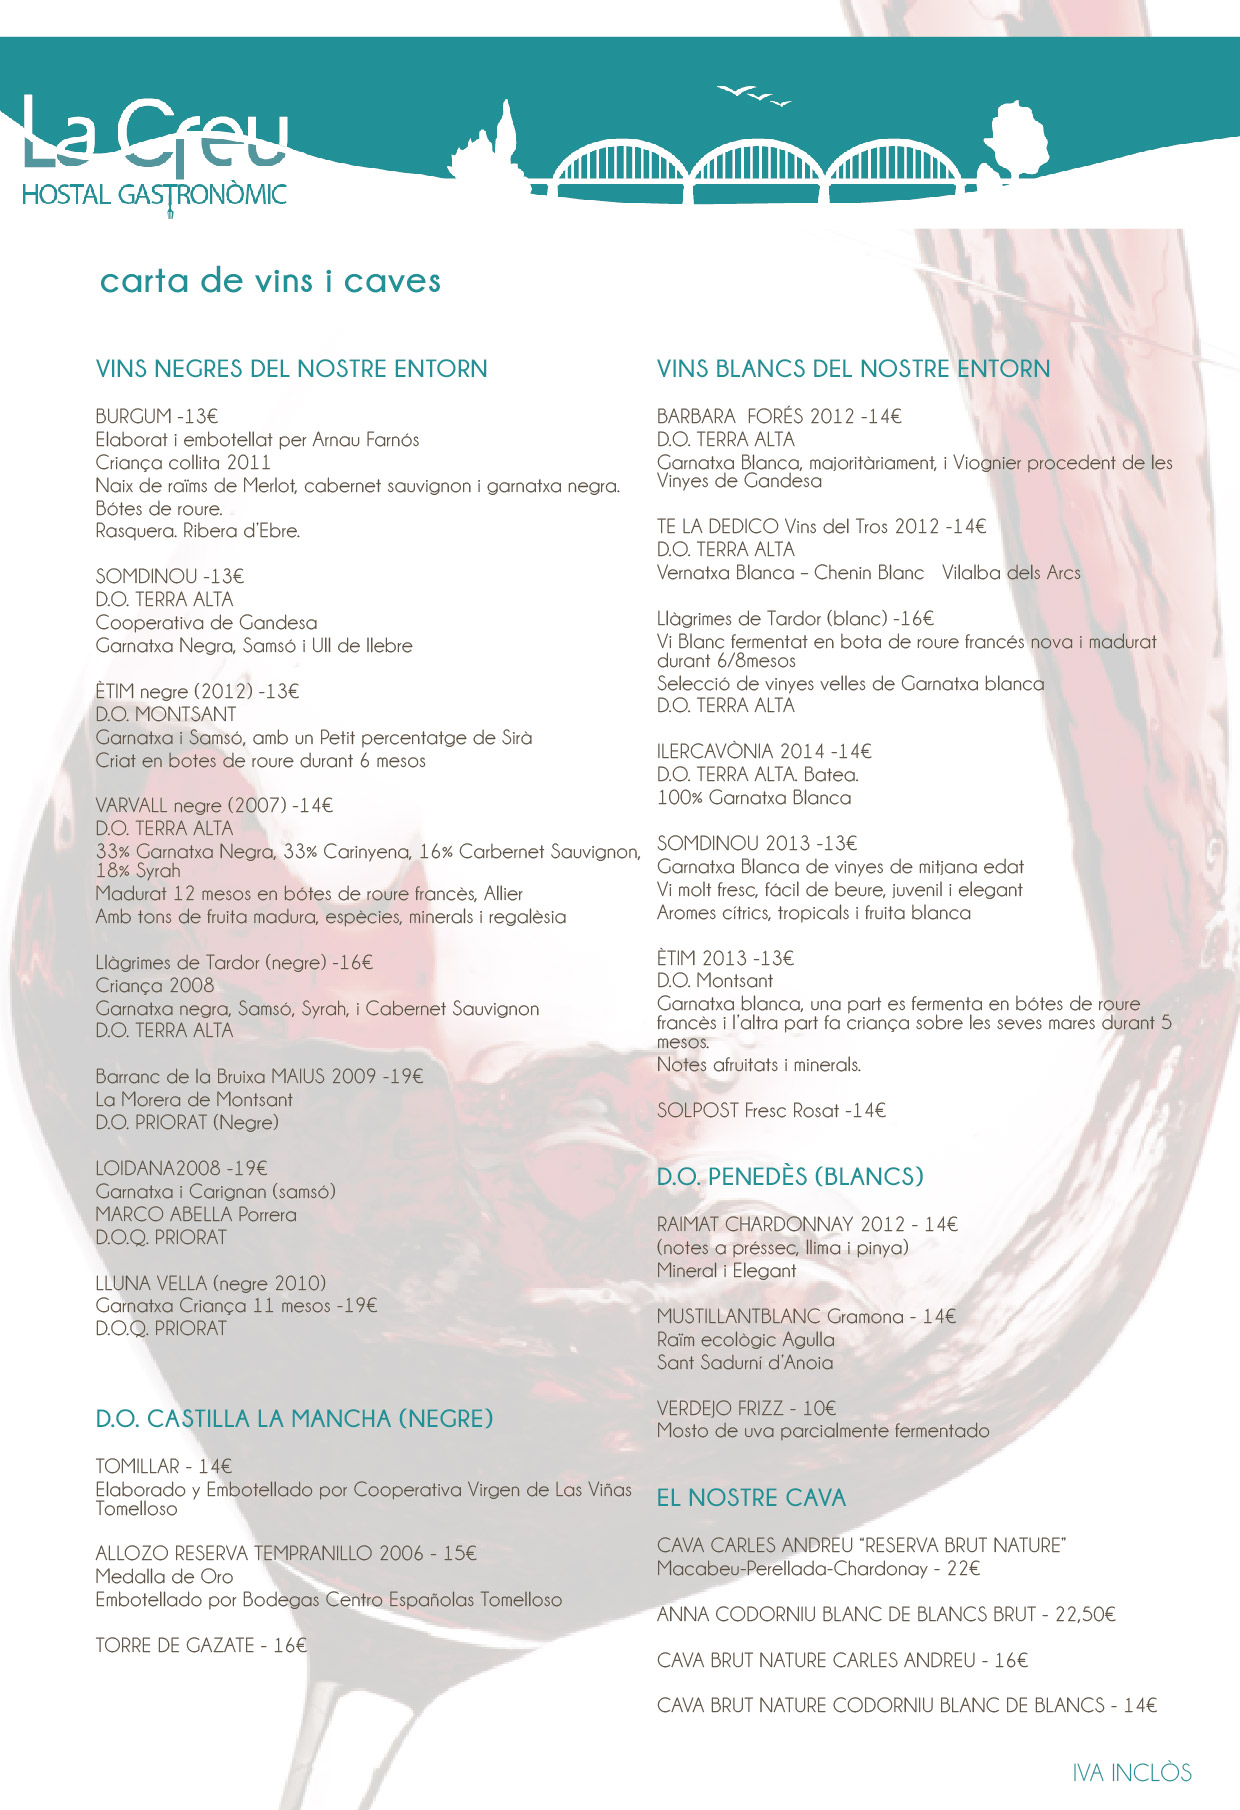 CARTA DE VINS I CAVES-01